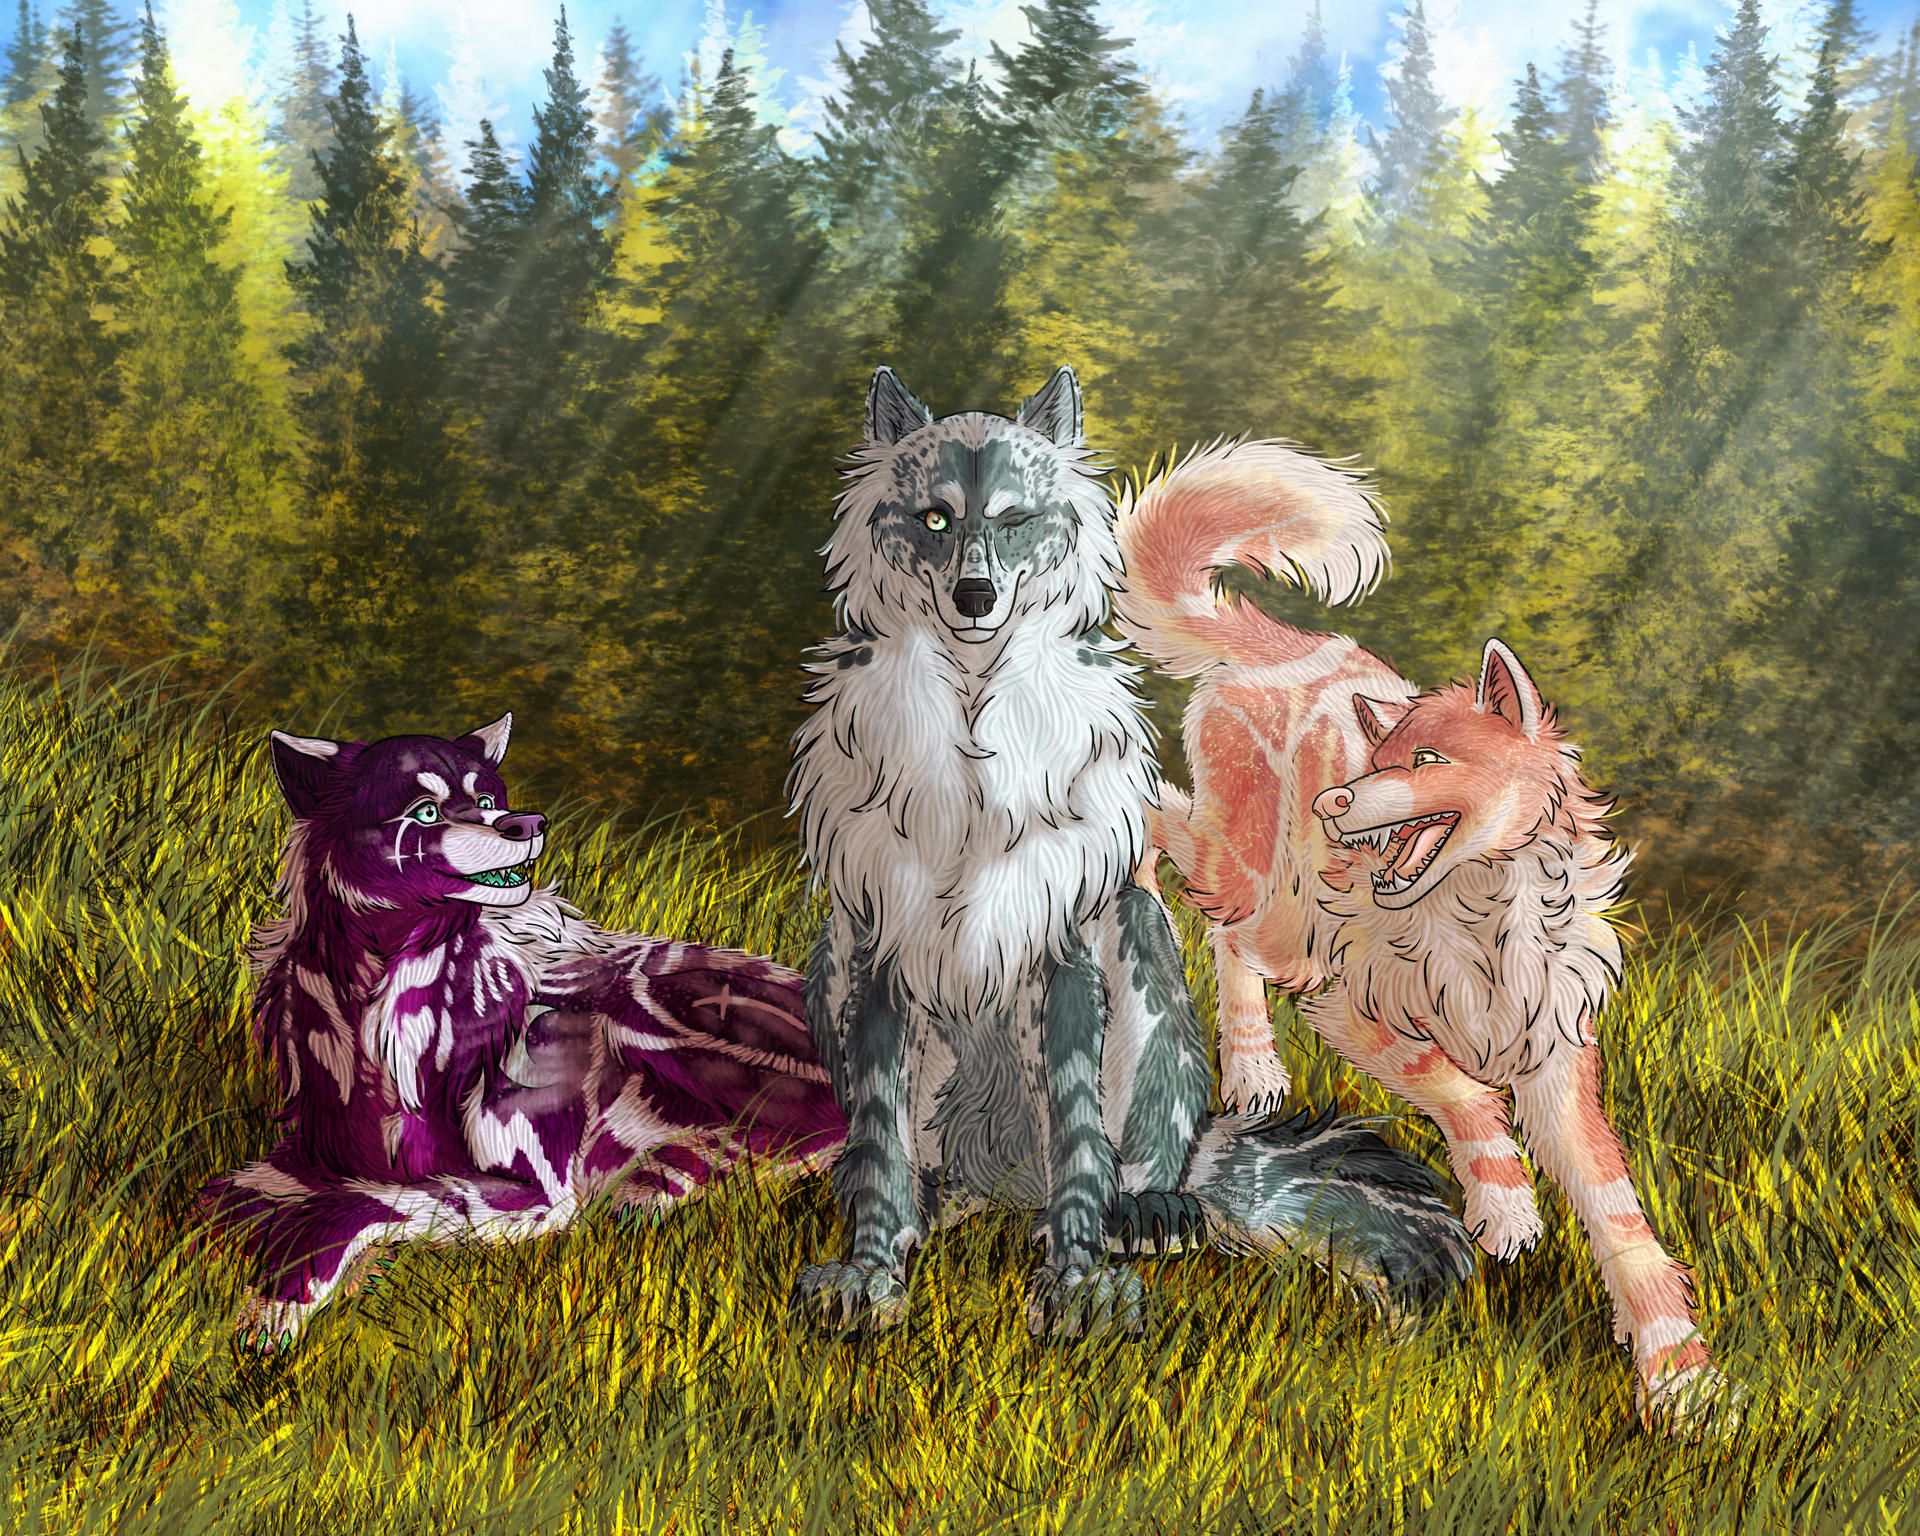 Alyna, Storm and Thea in the Forest